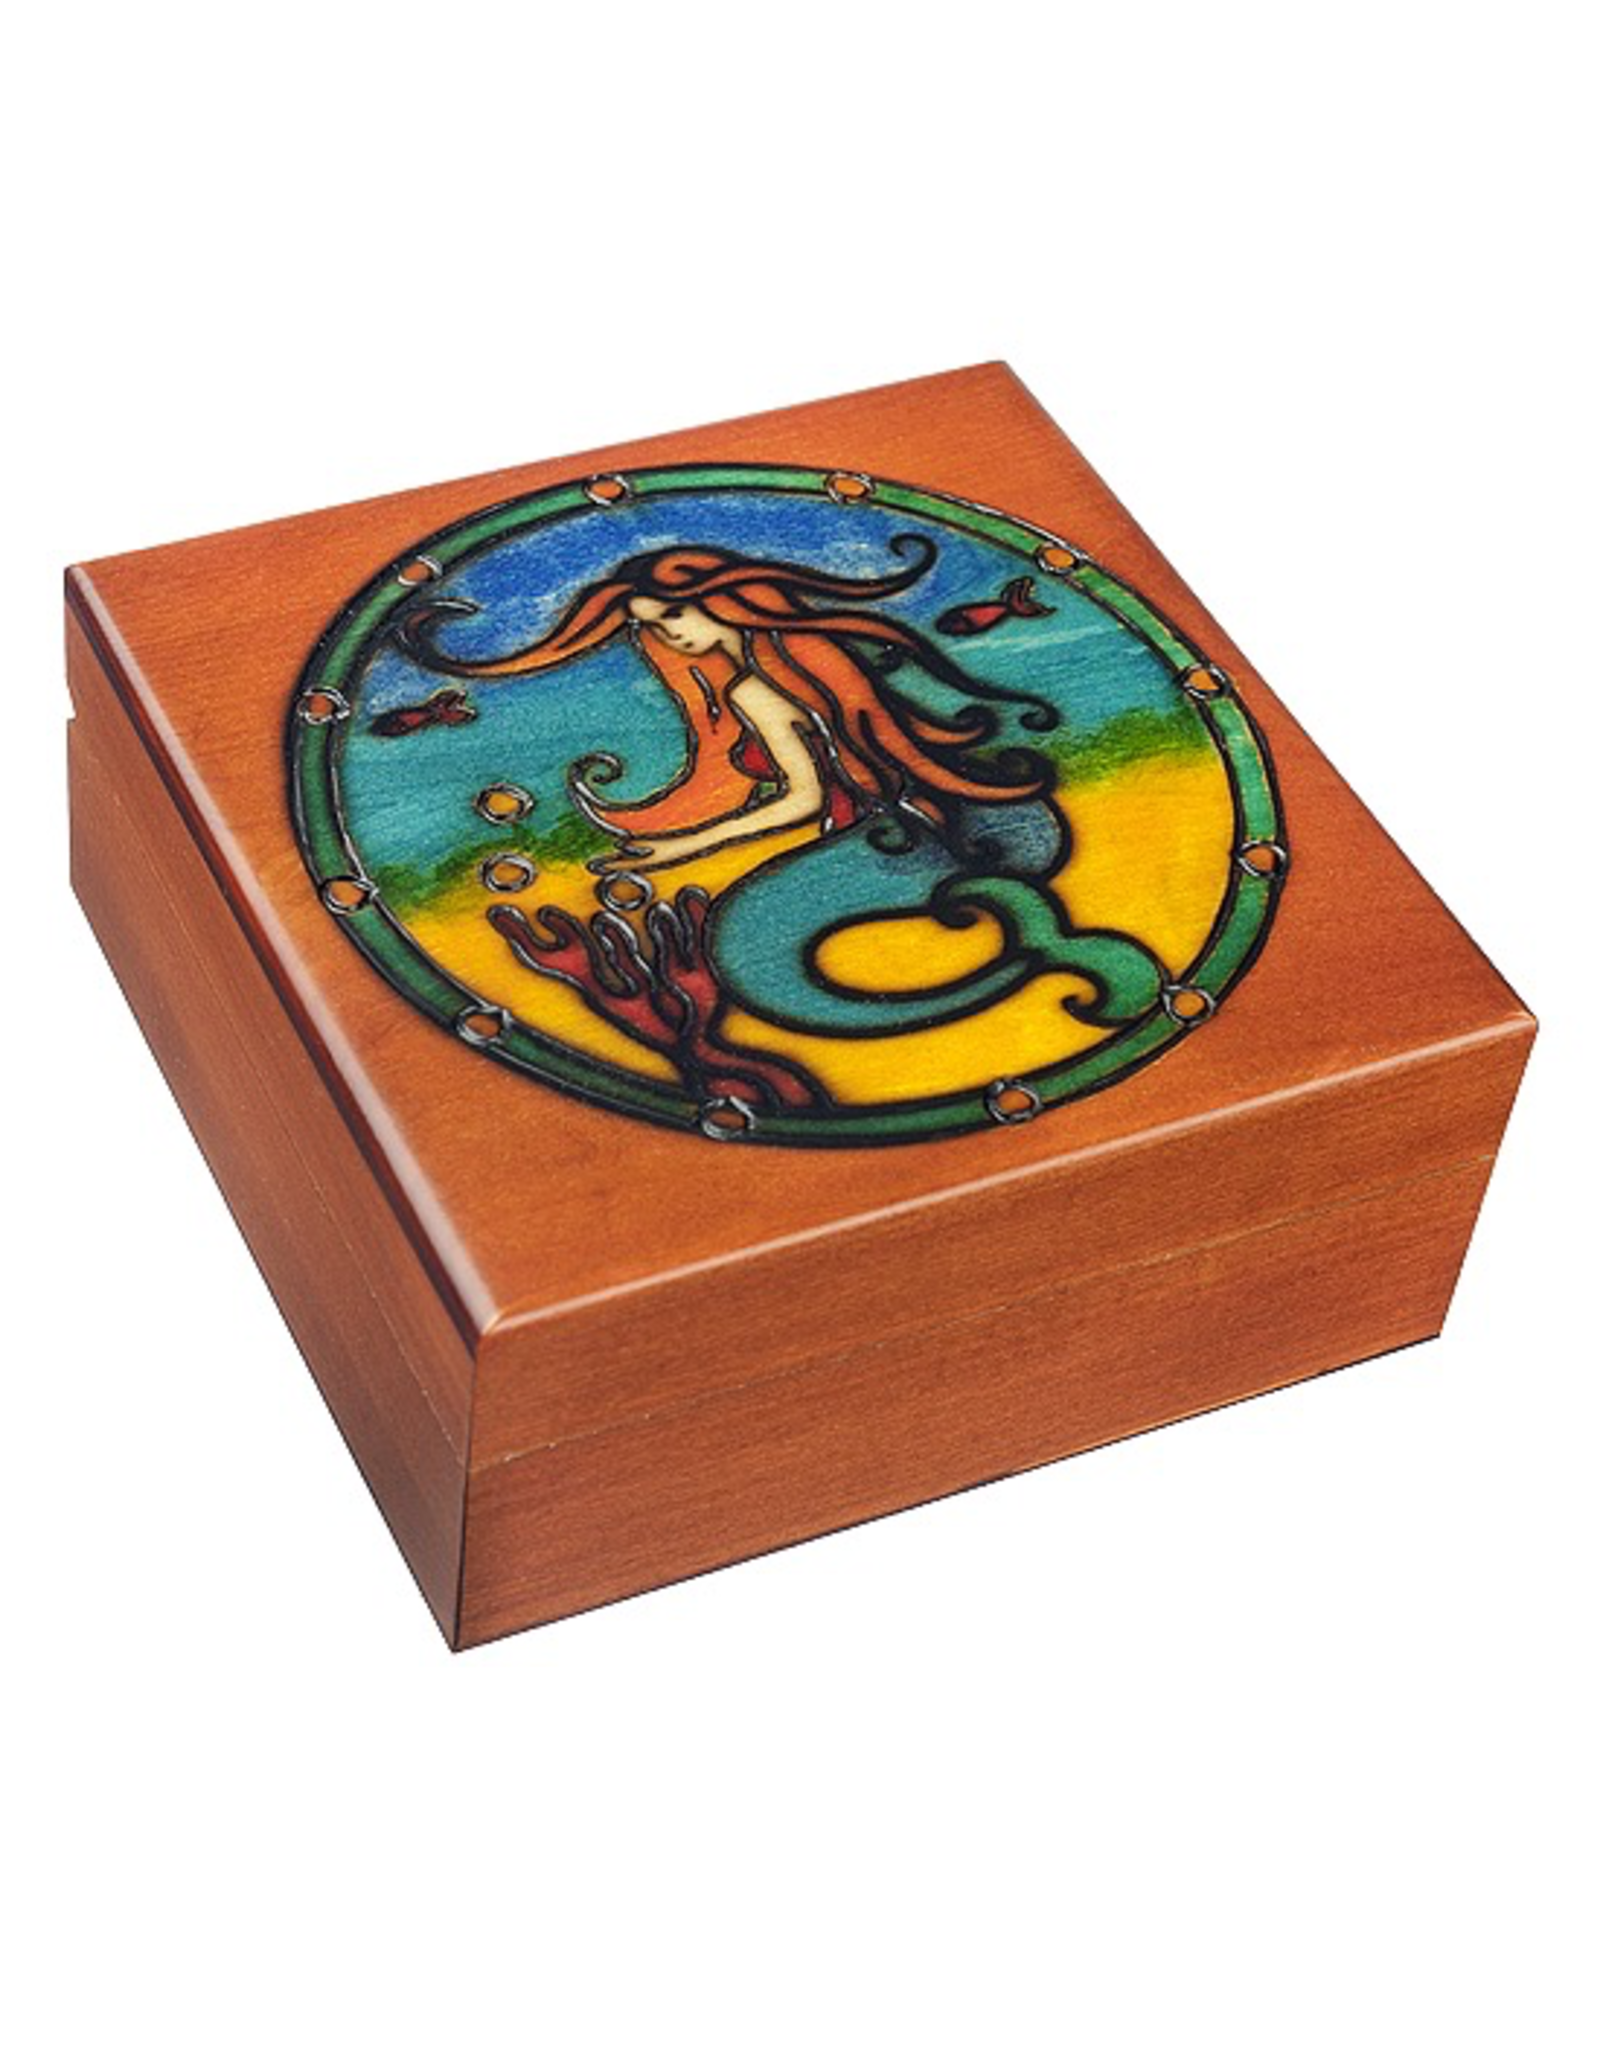 Enchanted Boxes Siren Wood Box